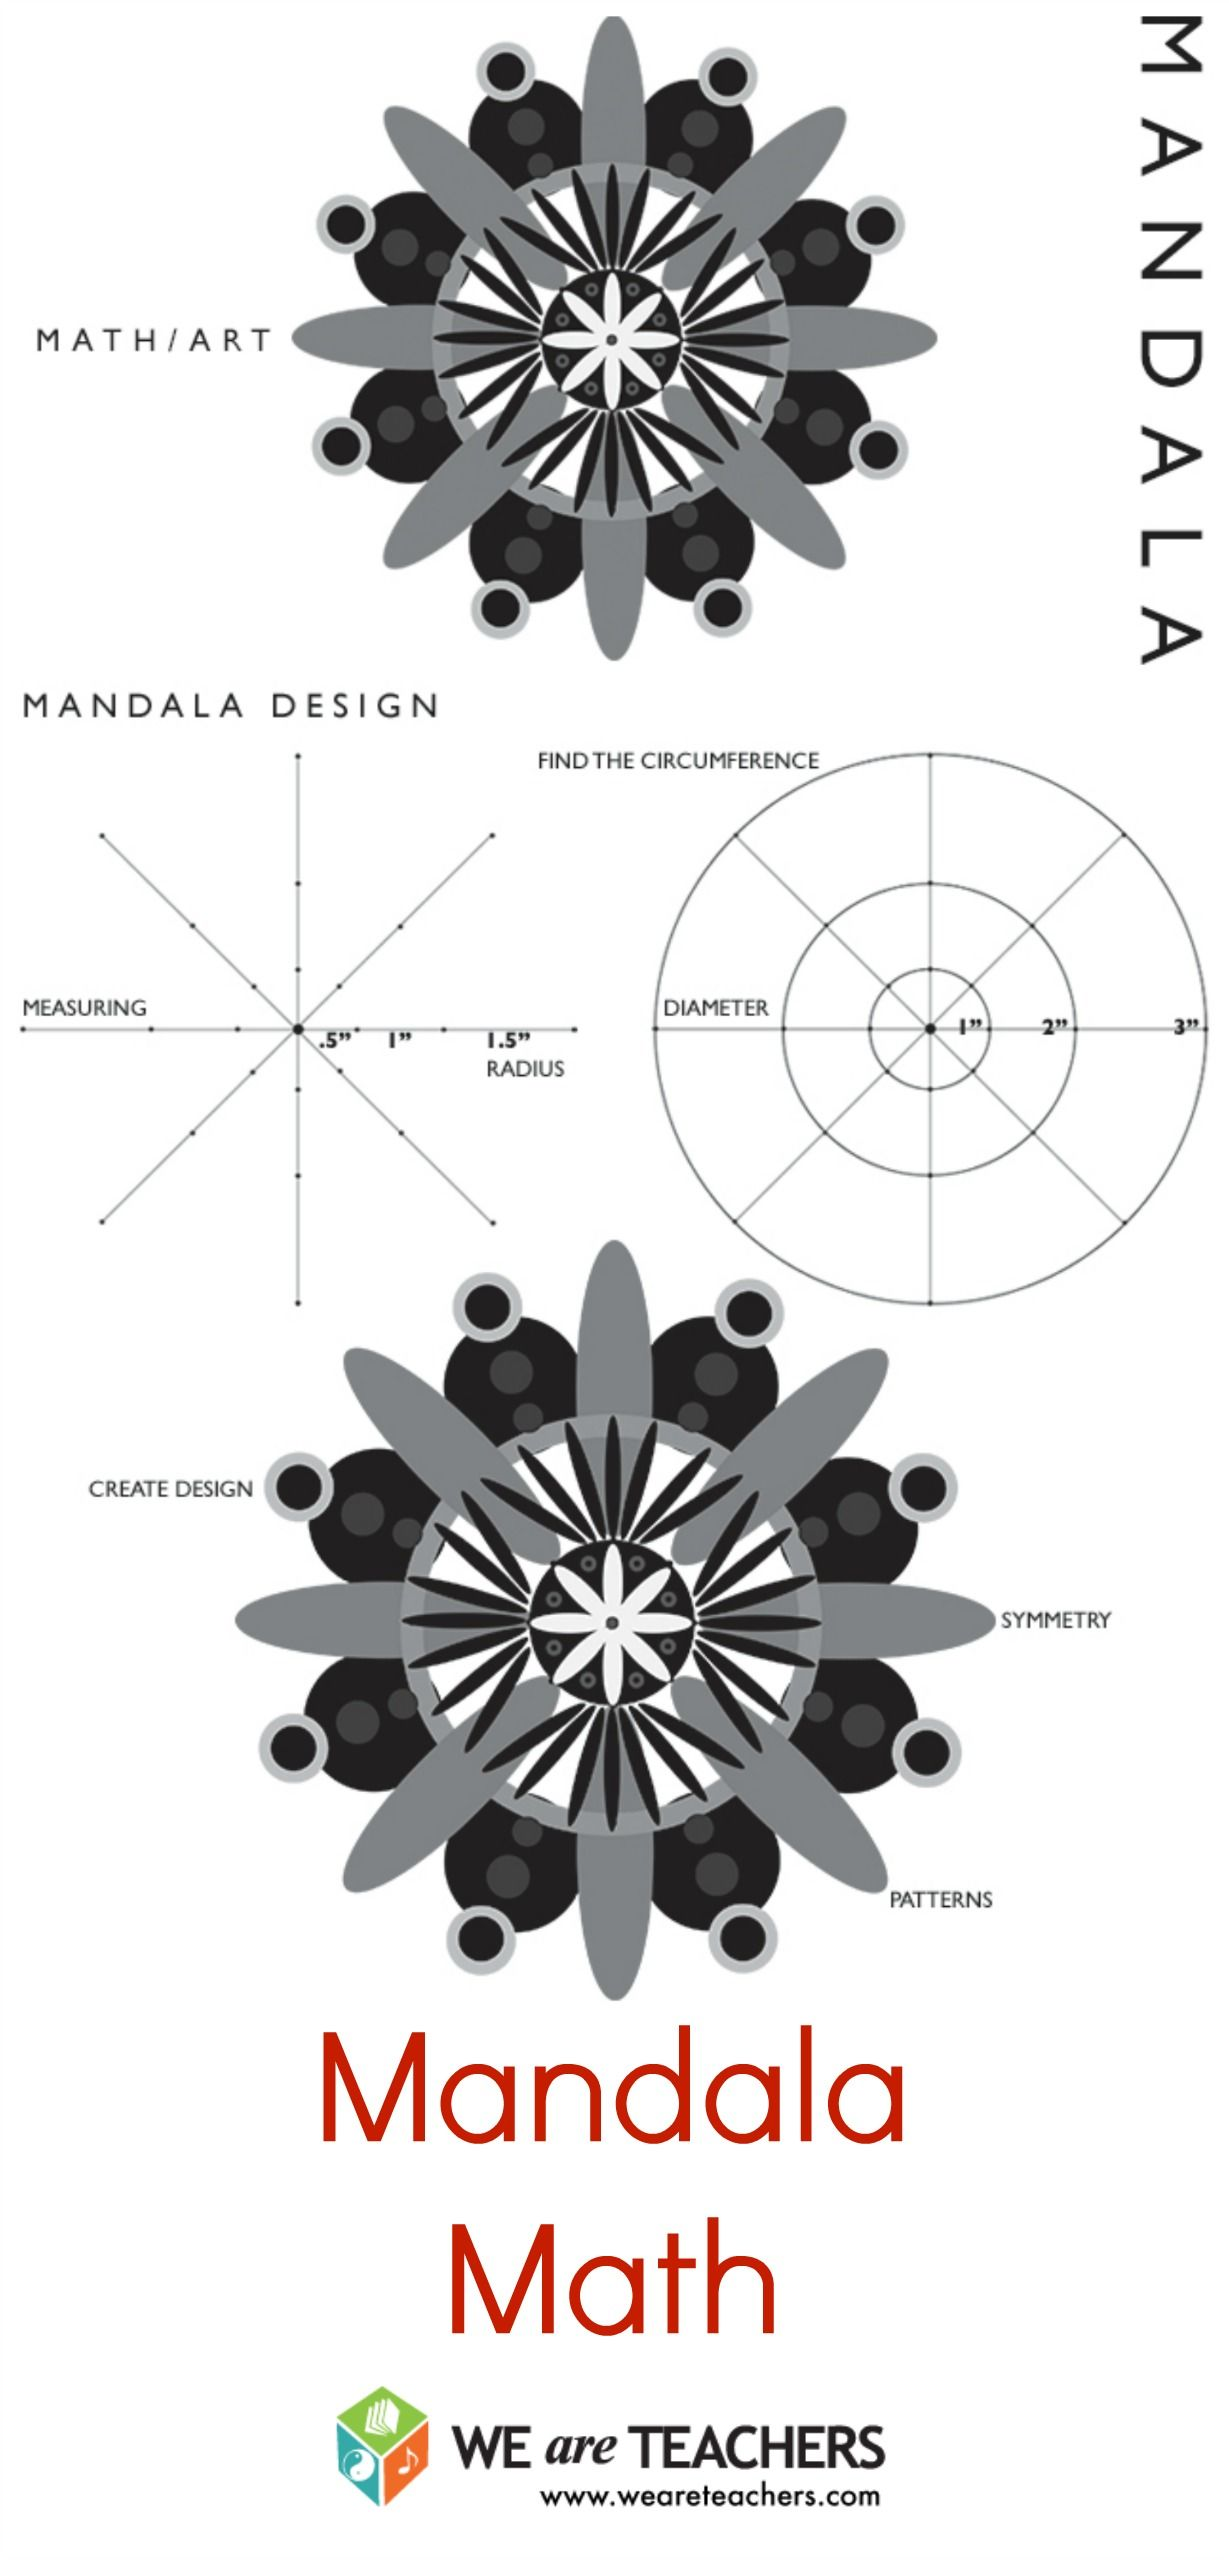 Making Mandalas: the Ultimate Art-Math-Meditation Combo